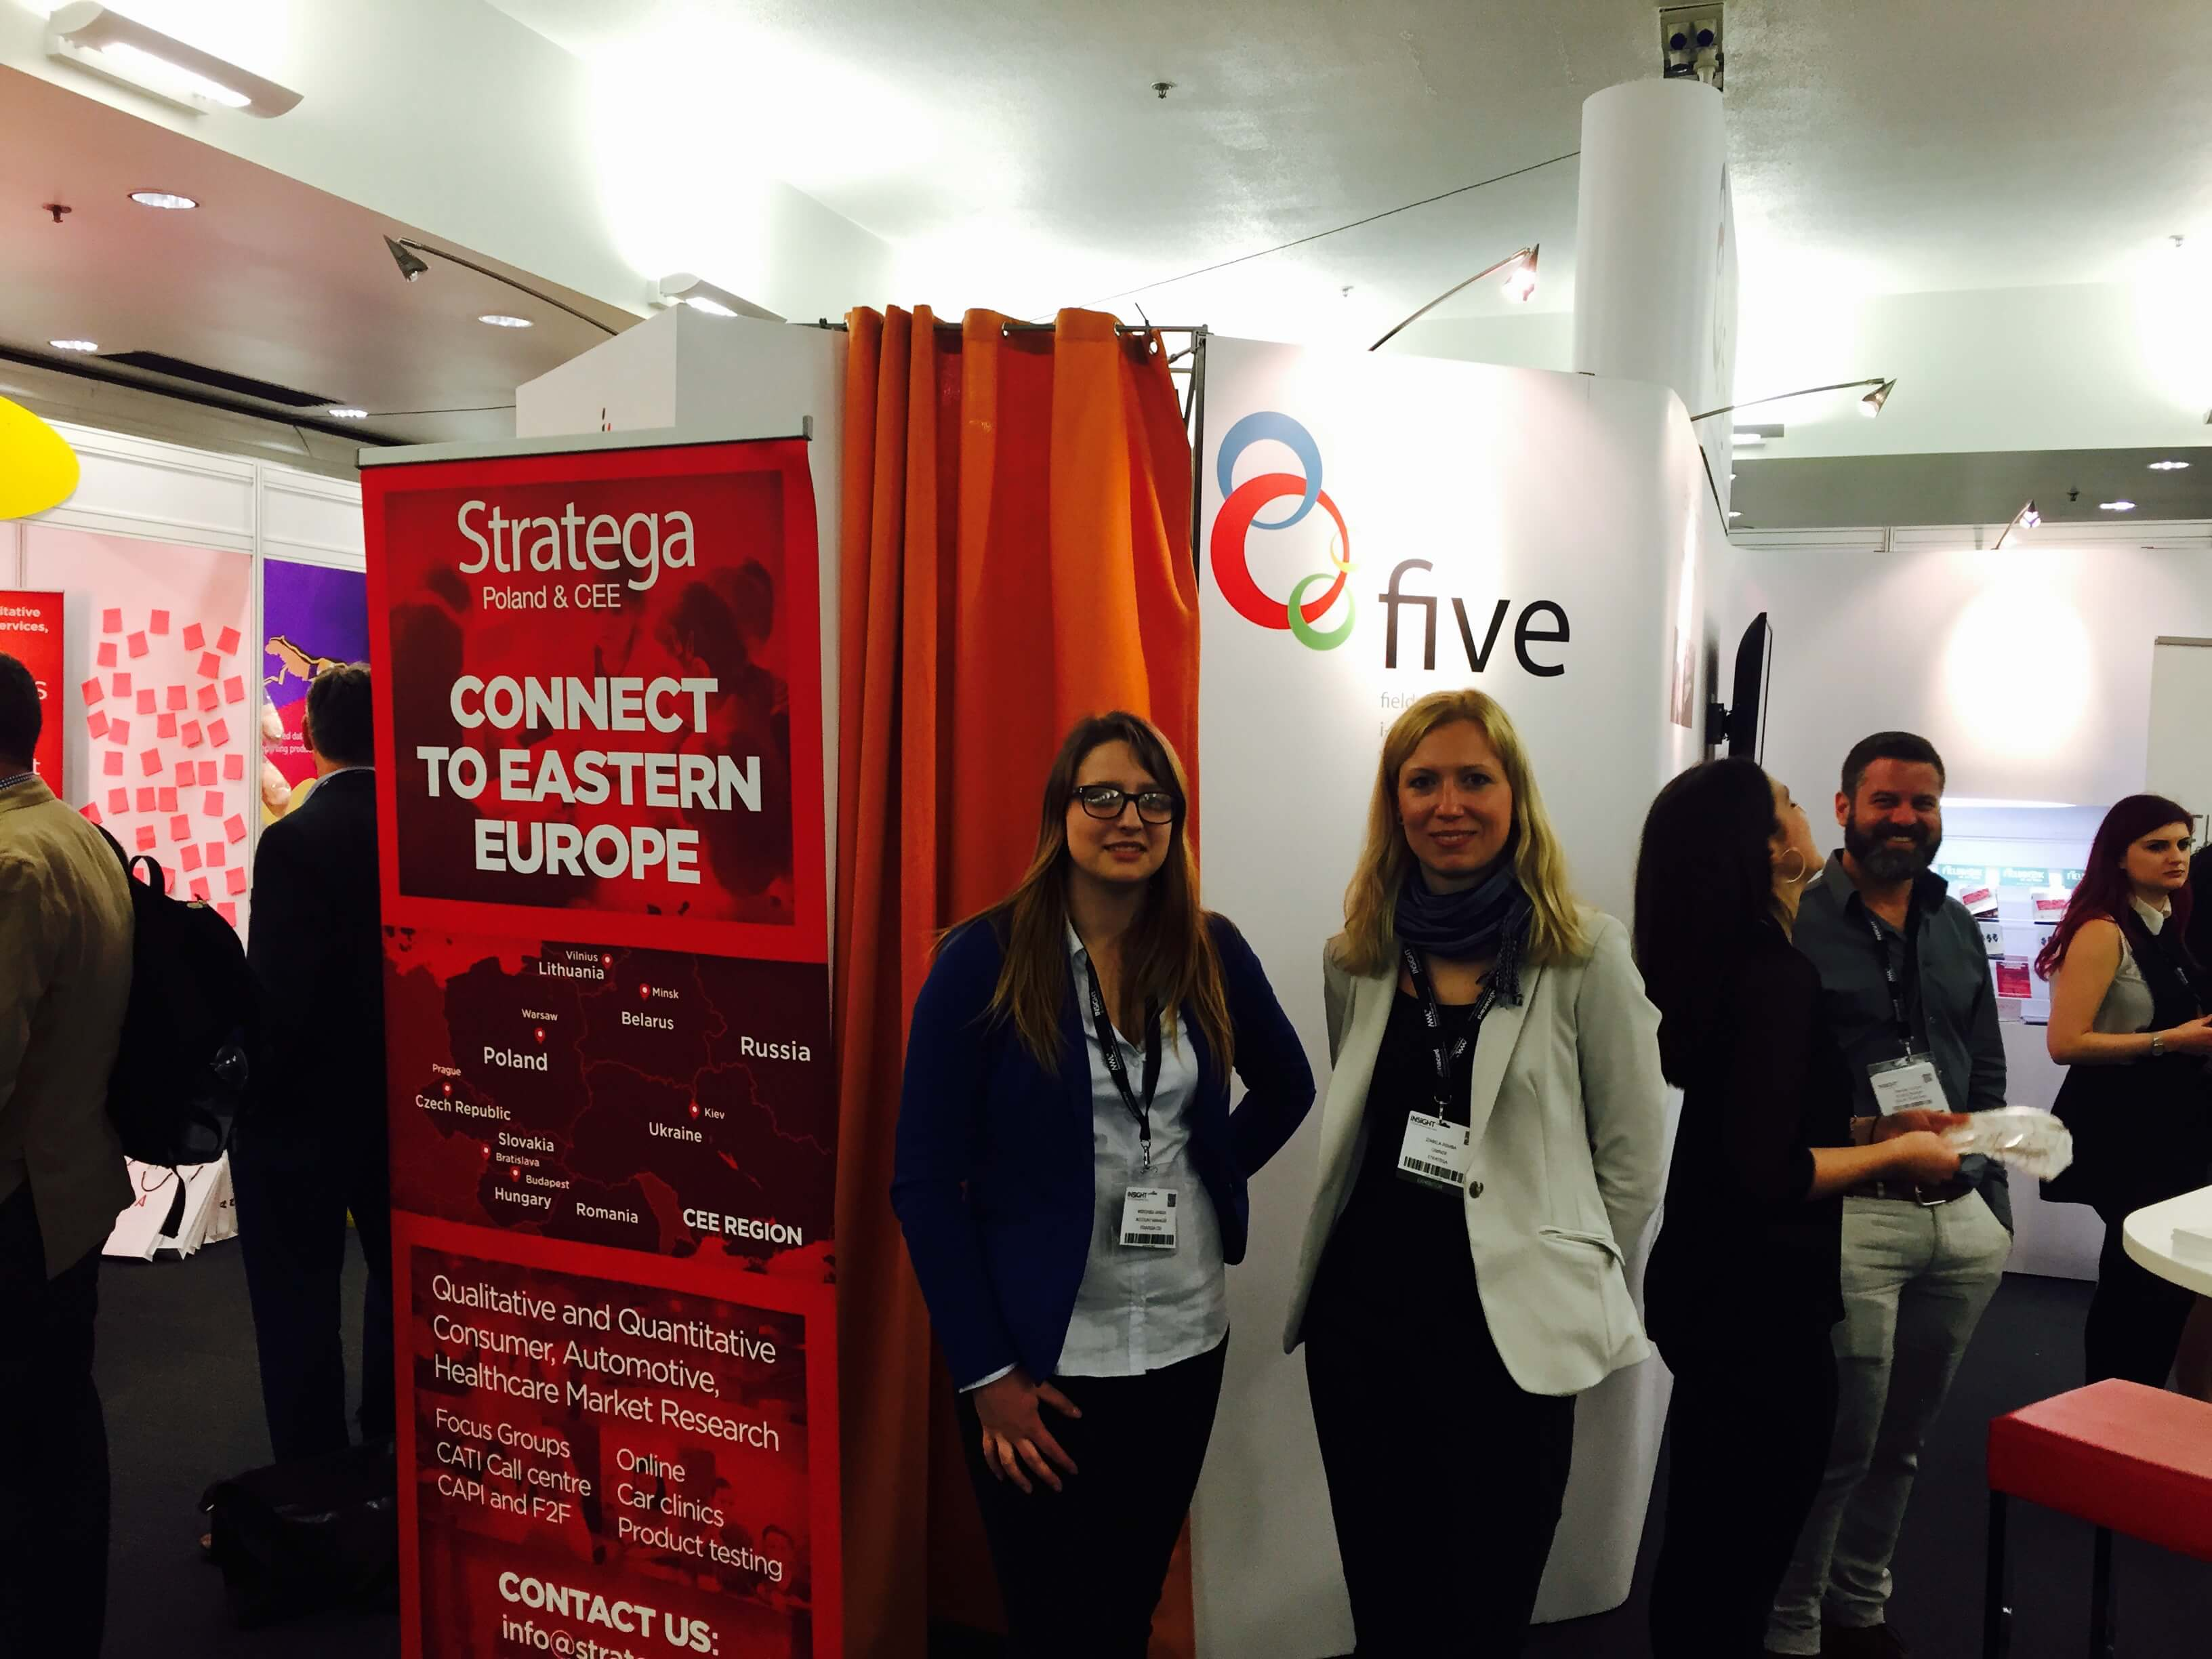 Insight Show 2015 in London